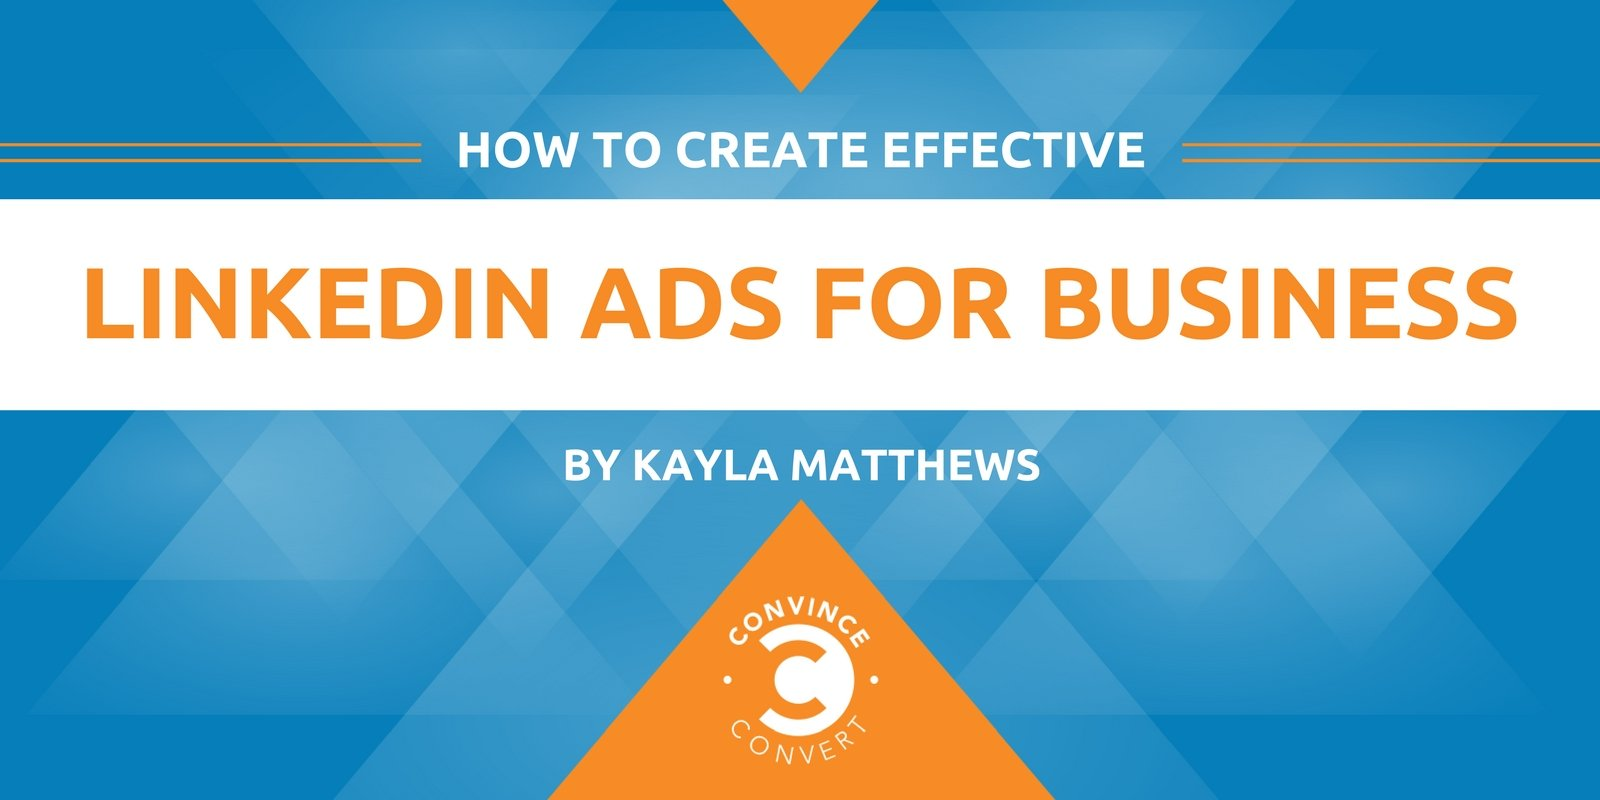 What makes an effective ad?